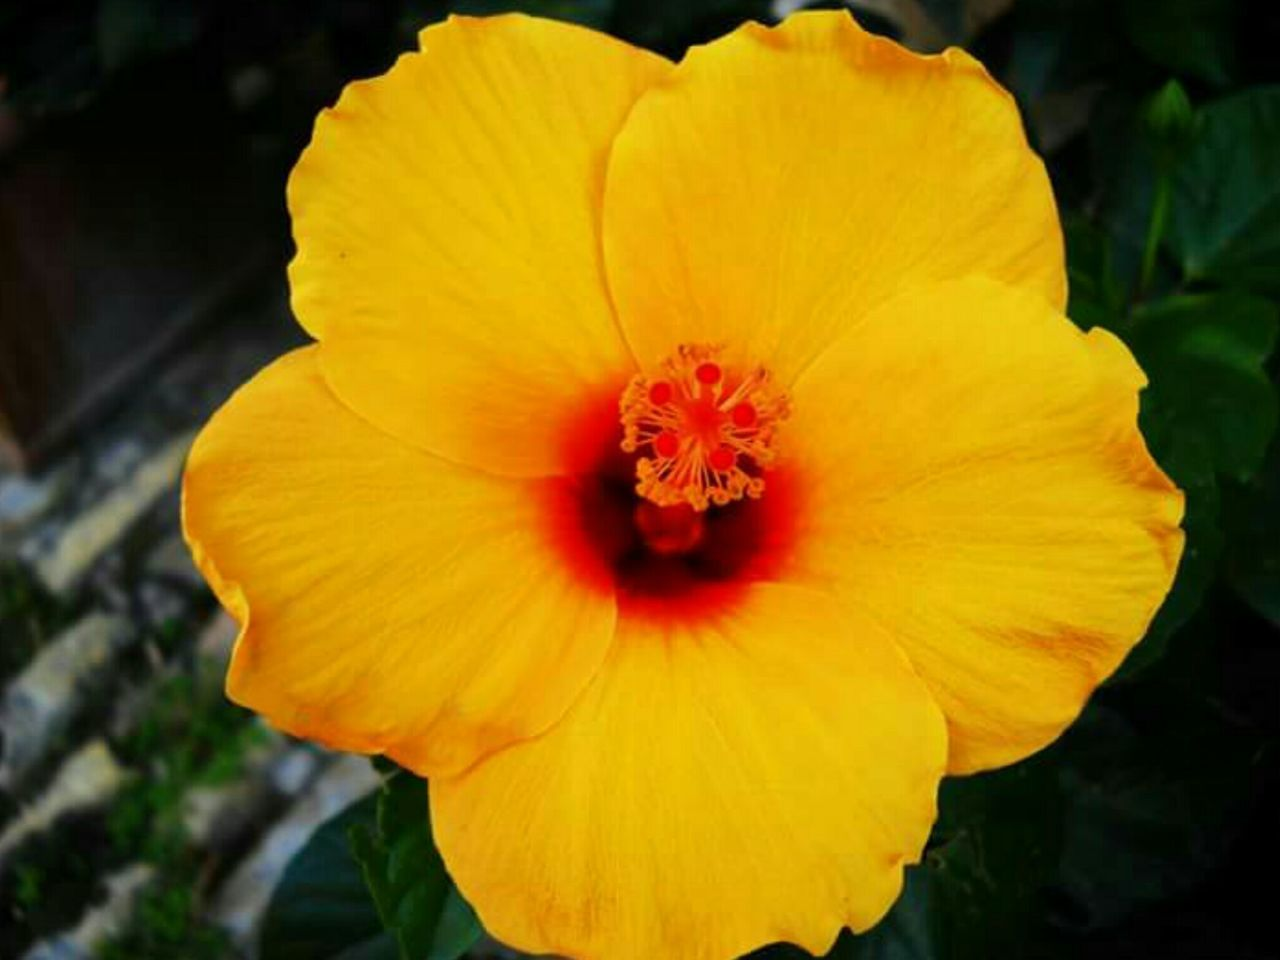 flower, petal, flower head, fragility, beauty in nature, nature, freshness, yellow, plant, growth, blooming, outdoors, day, no people, close-up, stamen, hibiscus